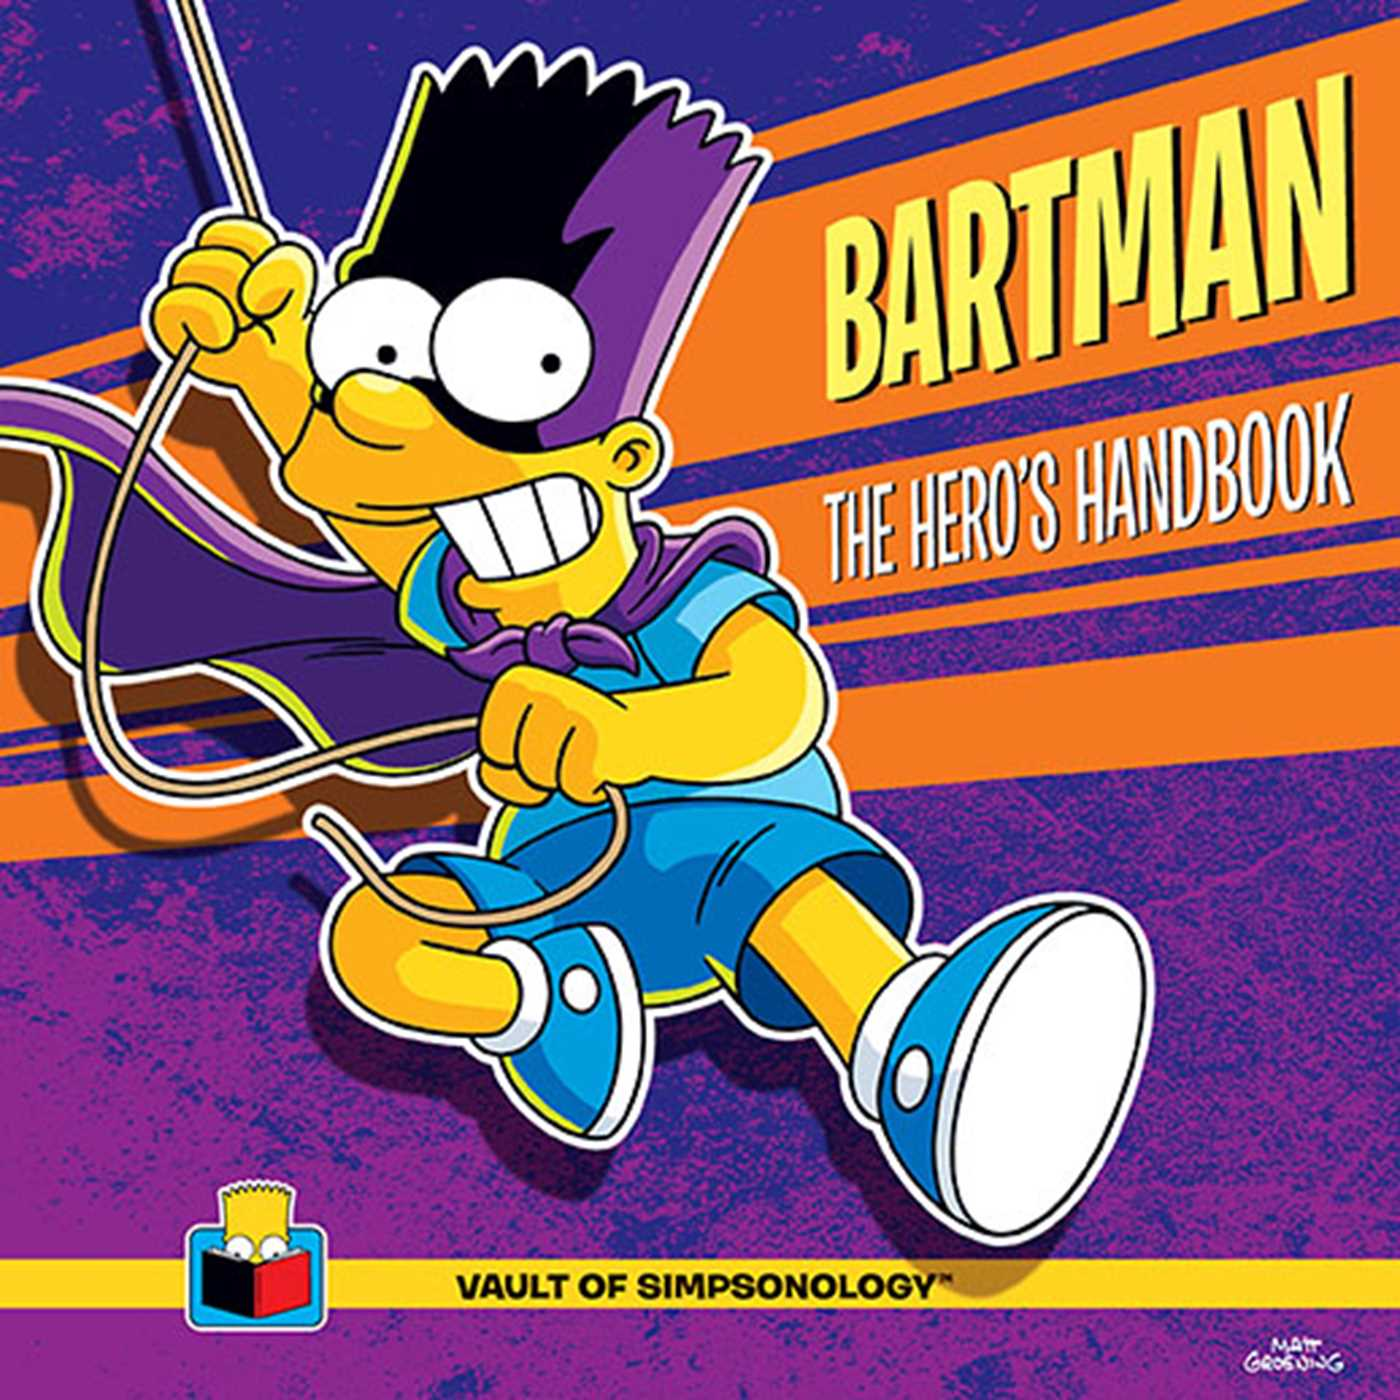 Bartman: The Hero's Handbook